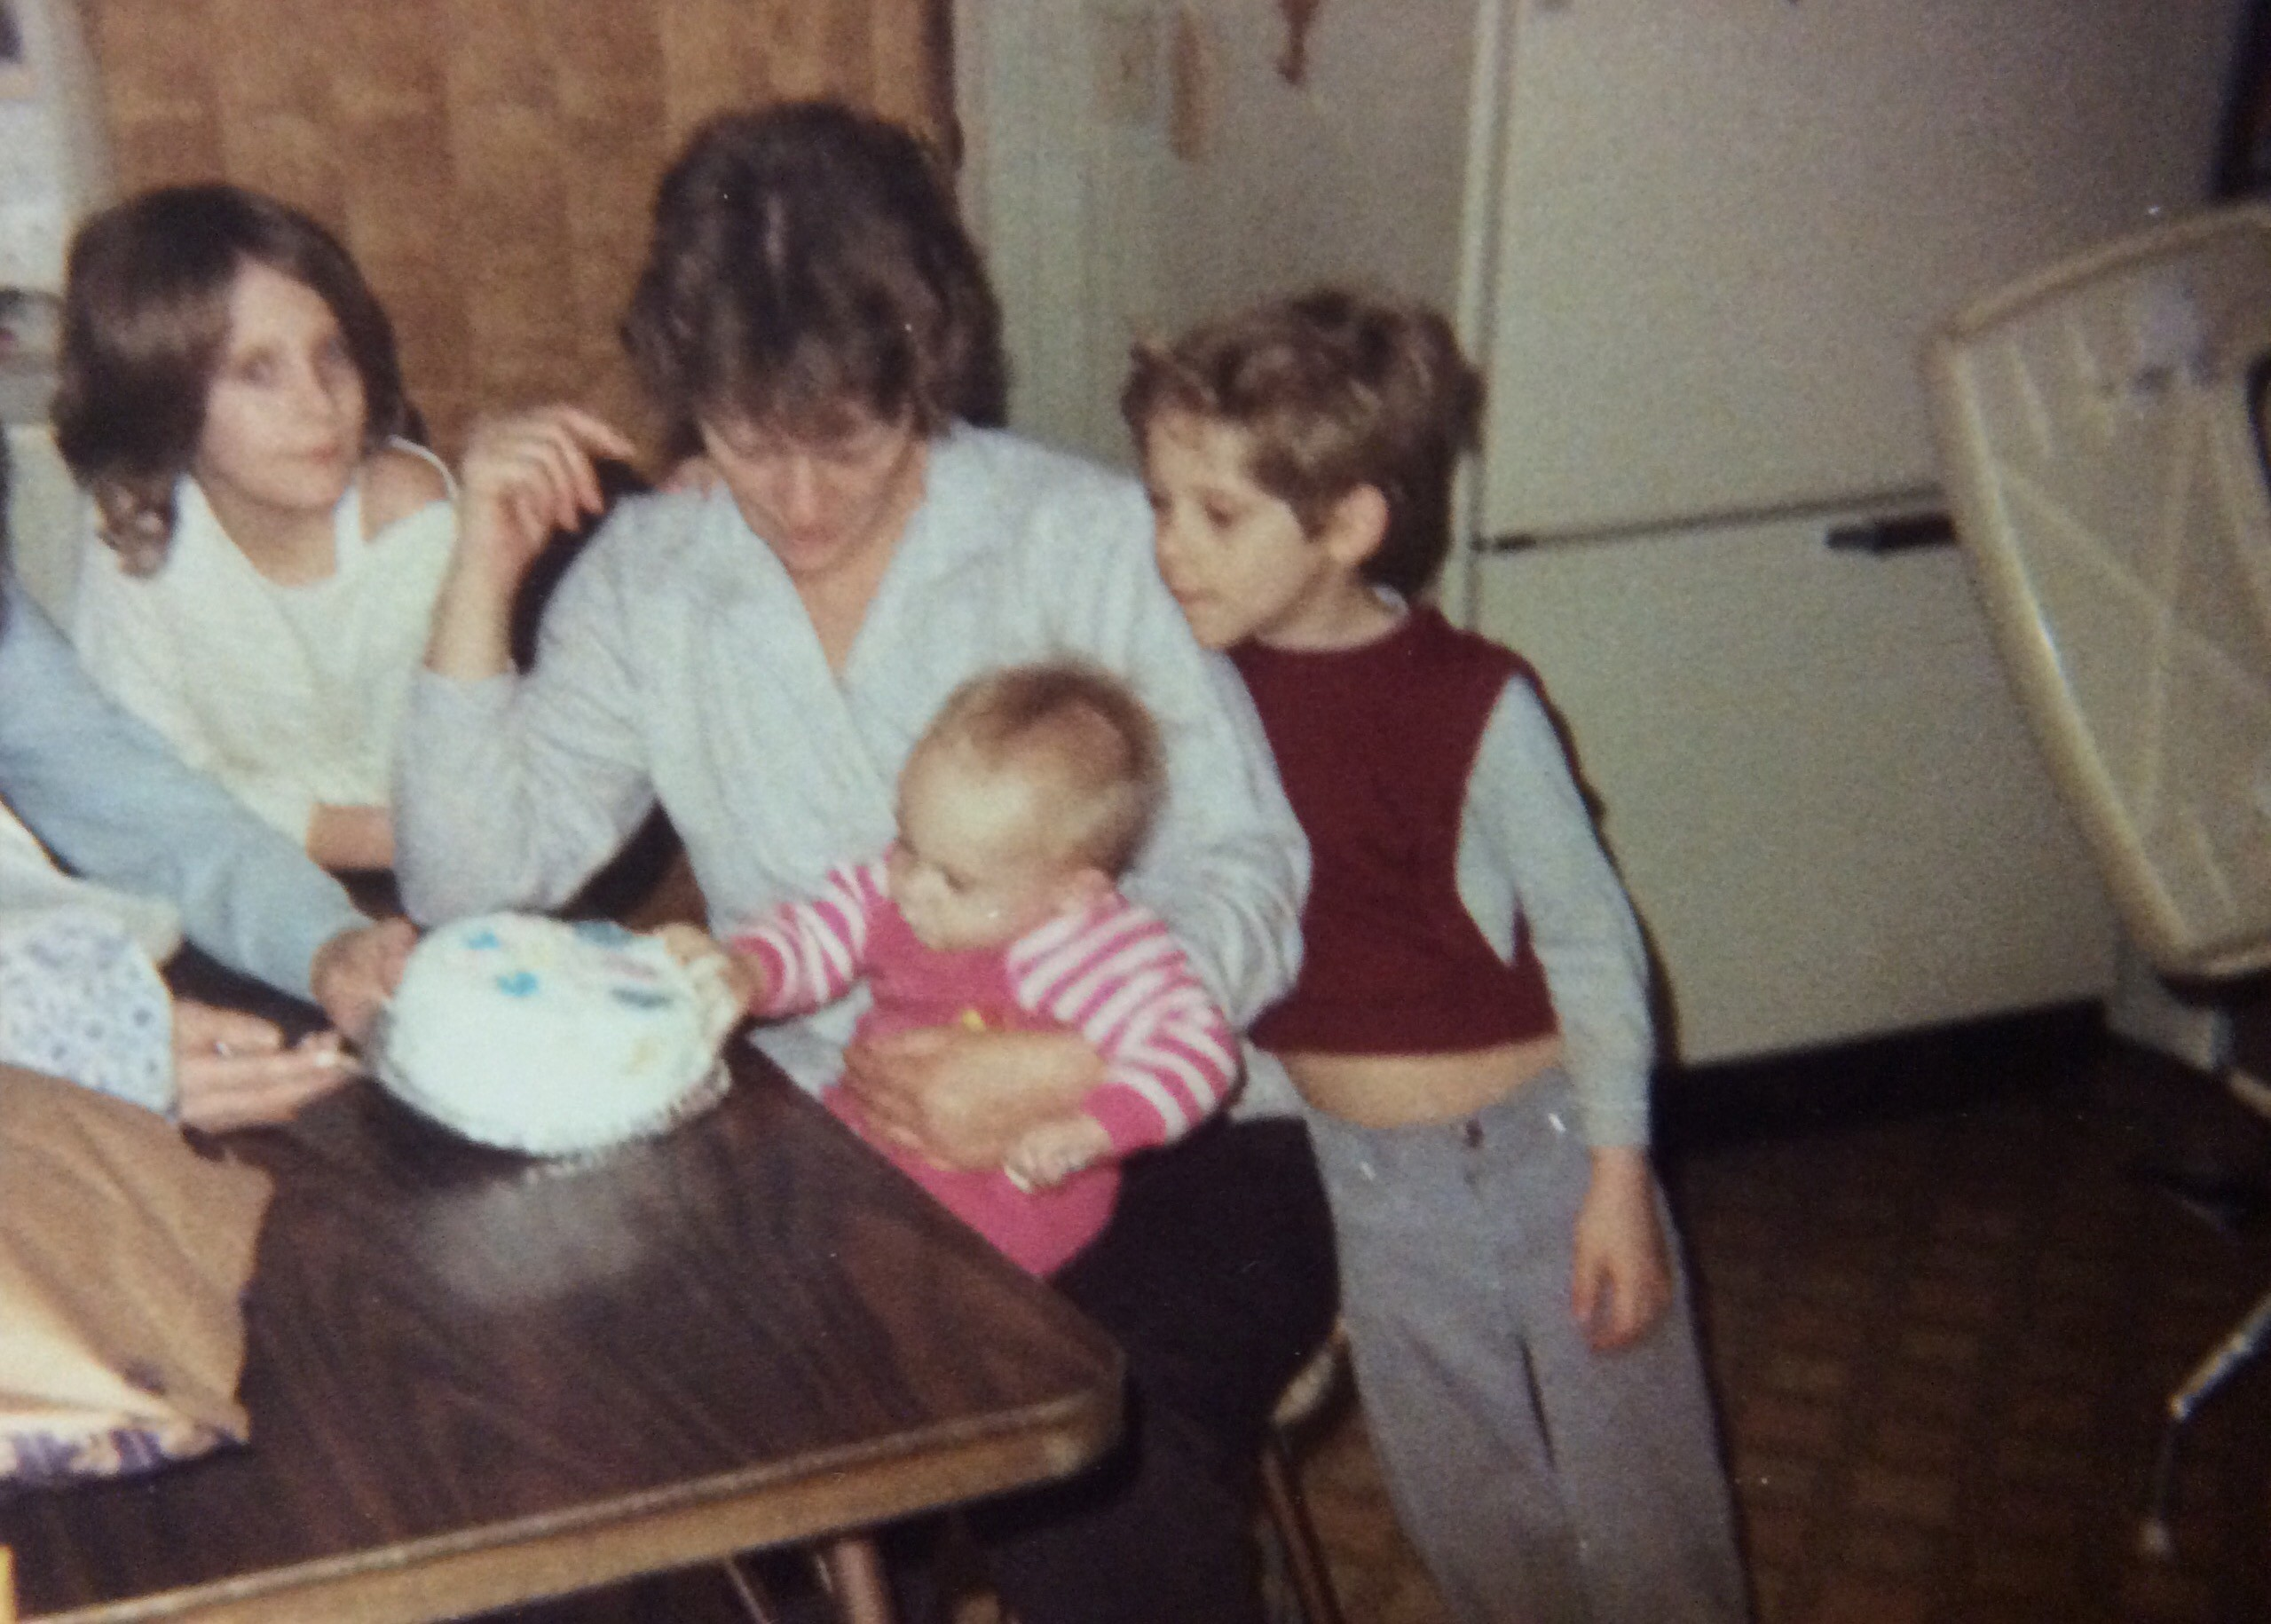 To My Mom, and the Cult that Tore Our Family Apart - Losing